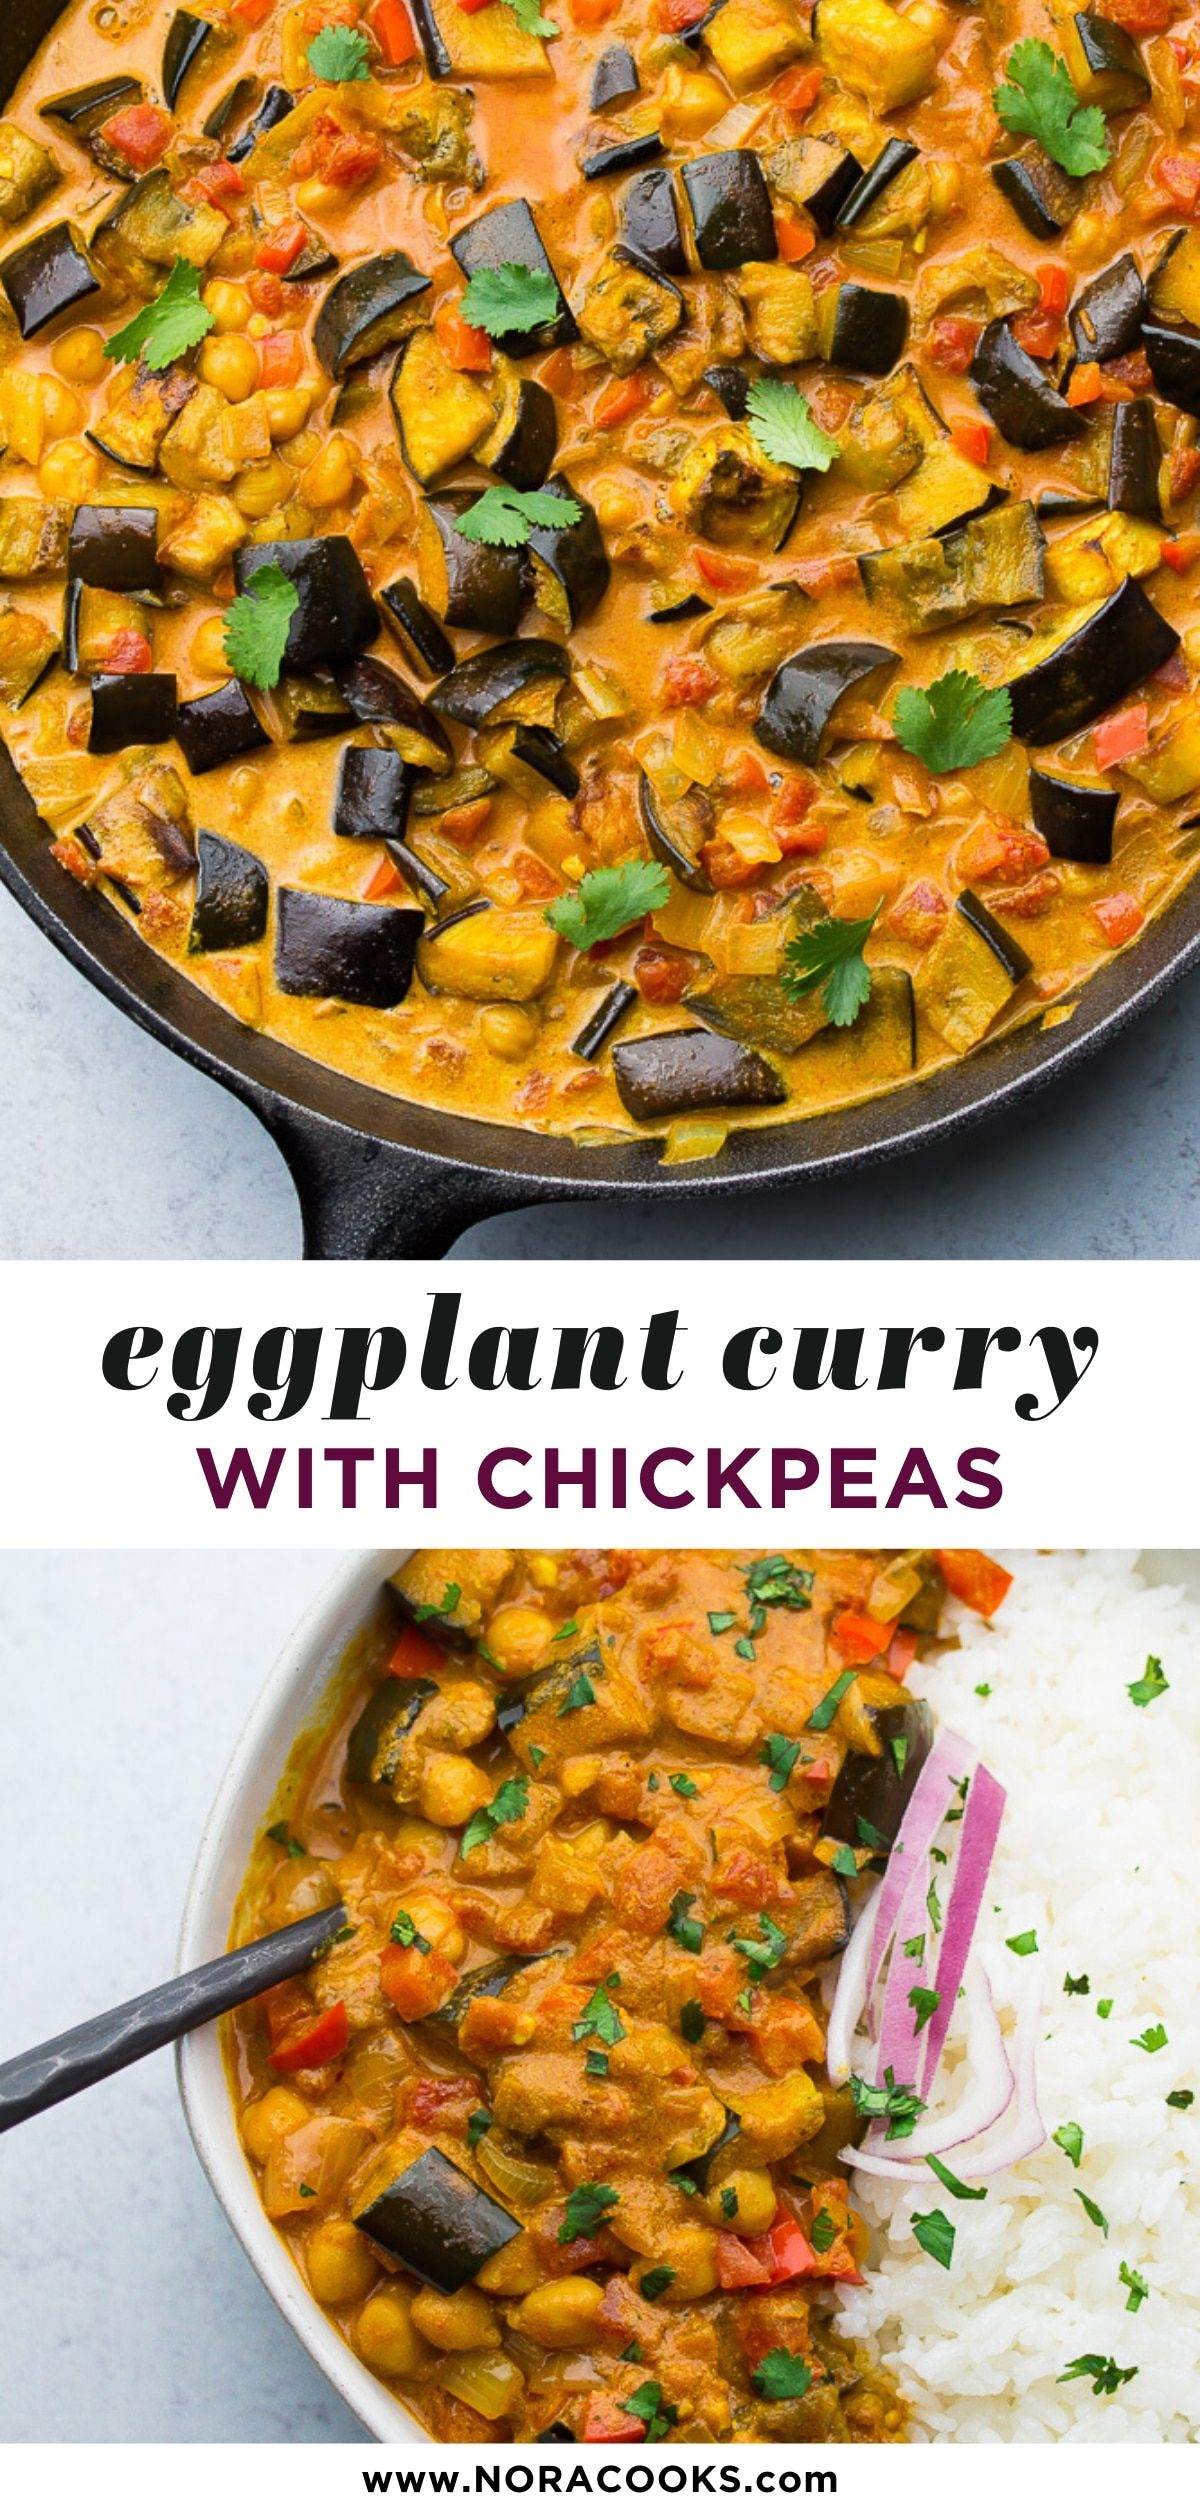 Roasted Eggplant Curry with Chickpeas